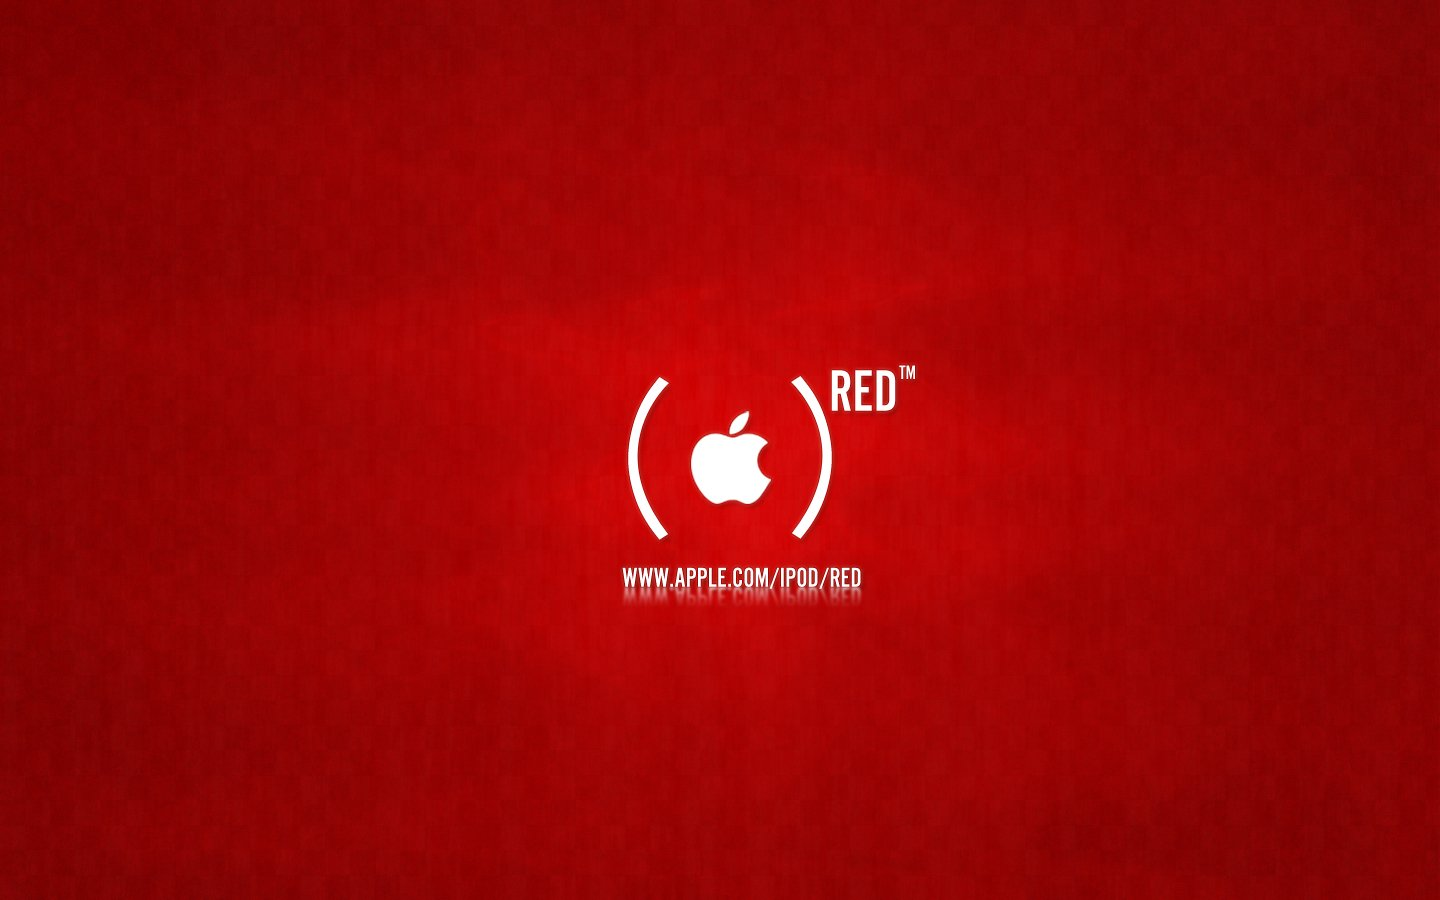 Red Wallpapers Widescreen Firefox Wallpaper Download 1440x900